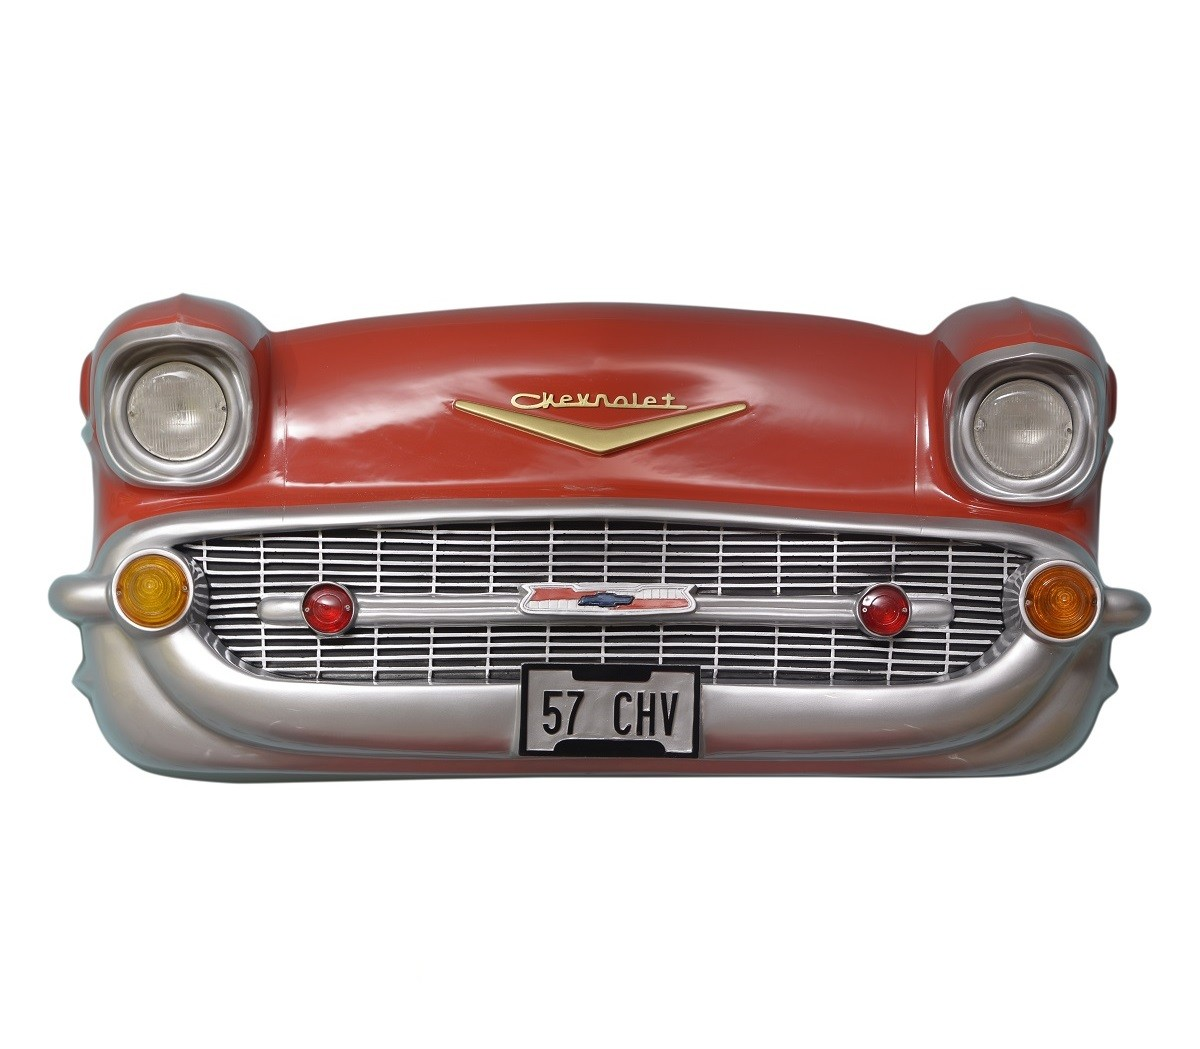 Musetto Chevrolet Chevy 57 Rosso